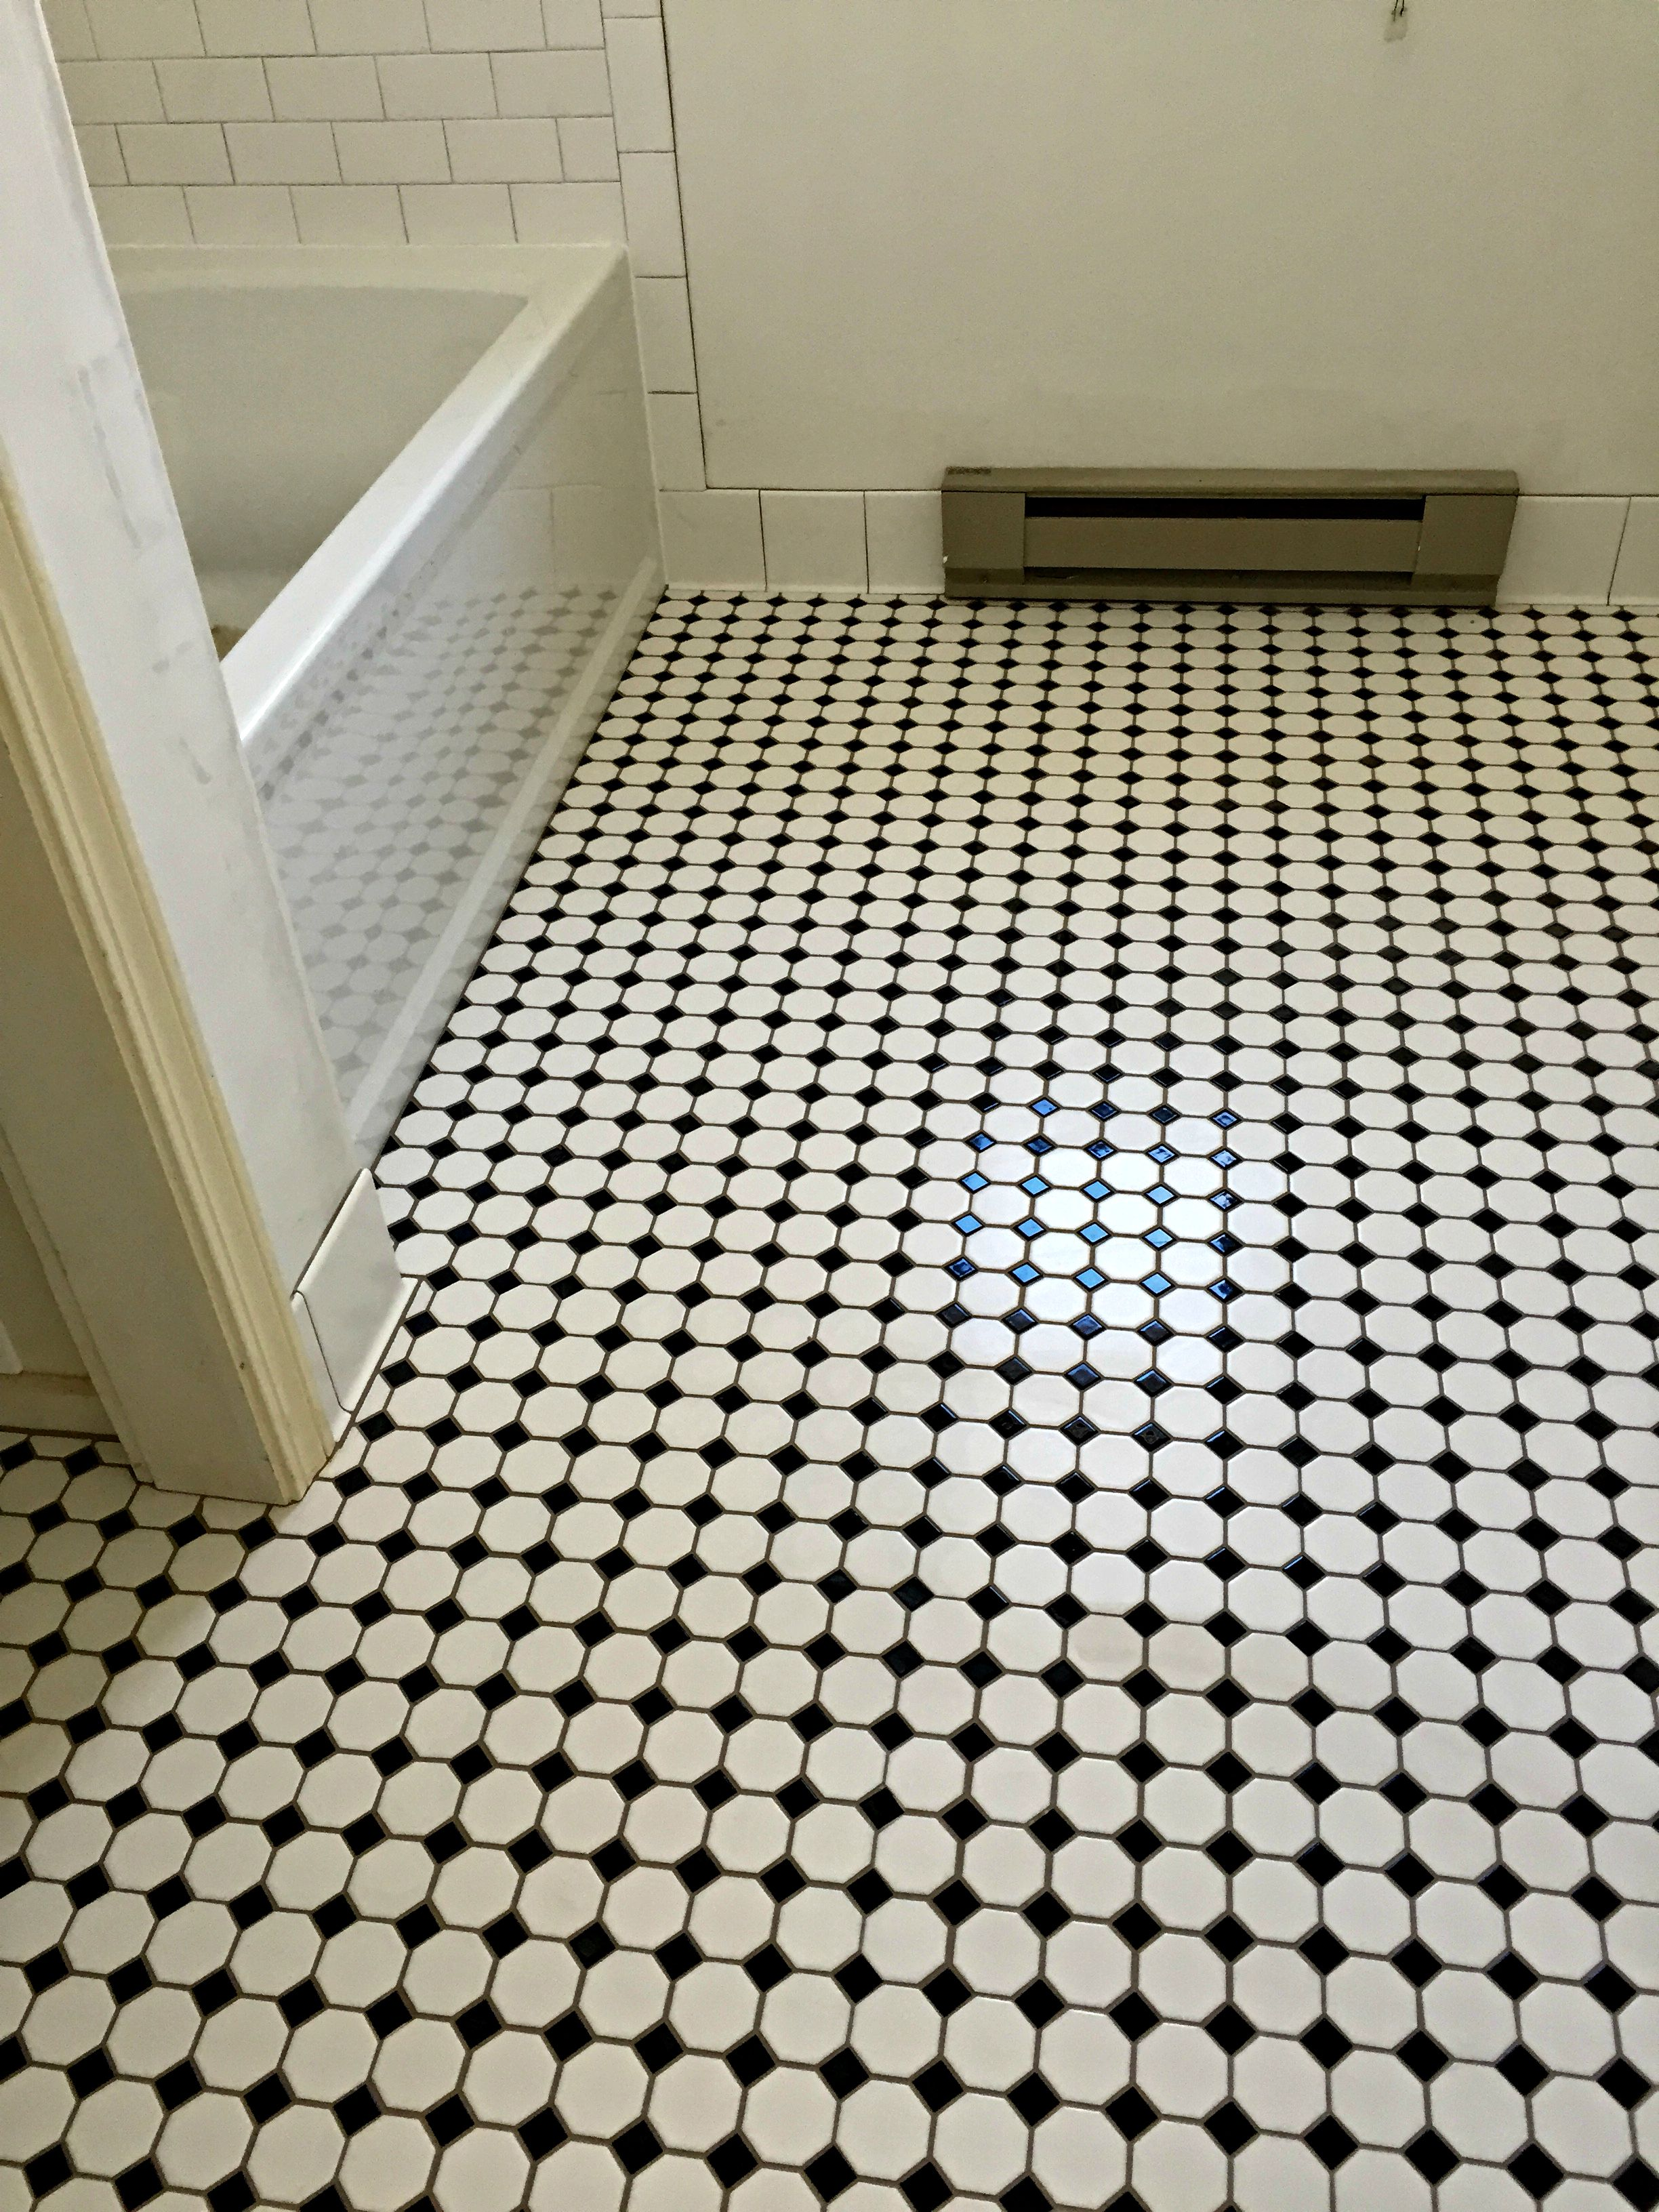 Bathroom Floor: Daltile Octagon & Dot Mosaic w/ Black Dot. Bath ...